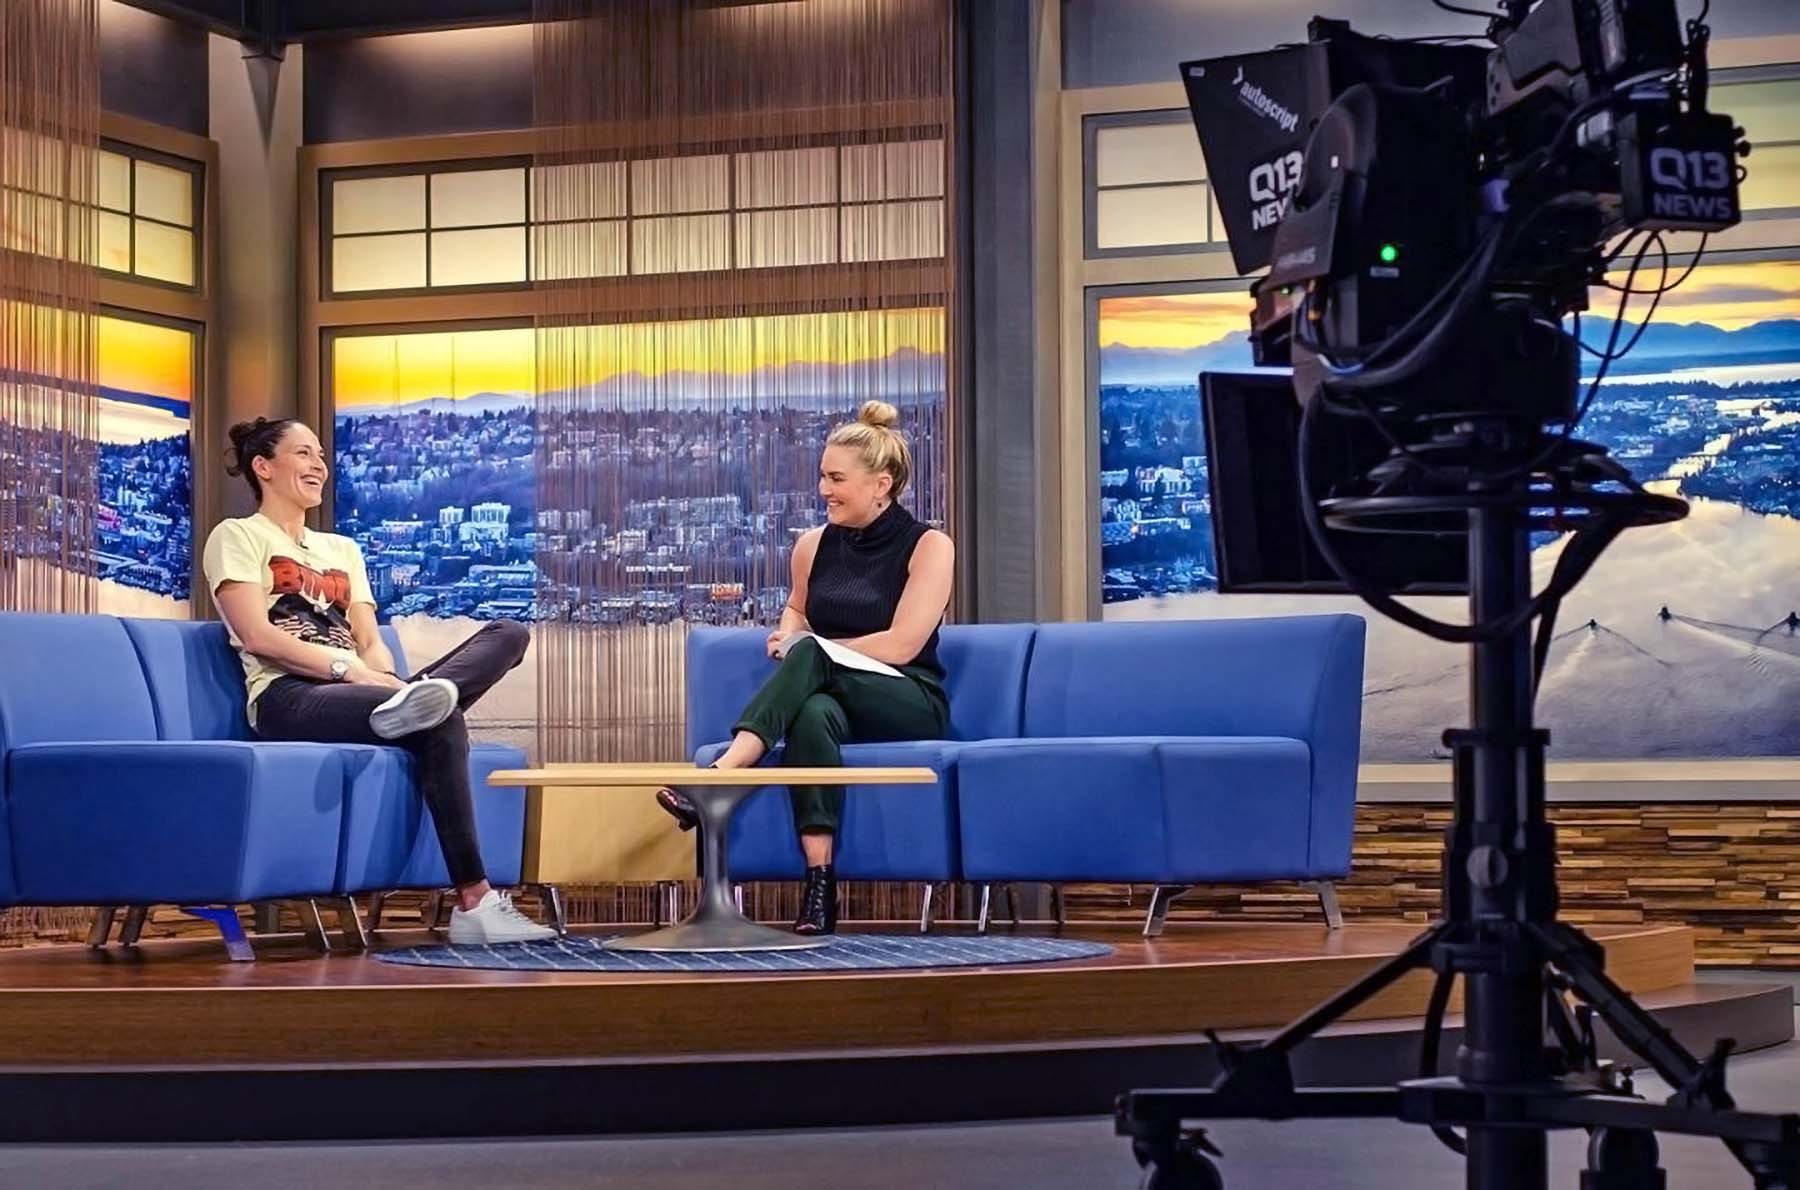 Q13 Fox Program with guest